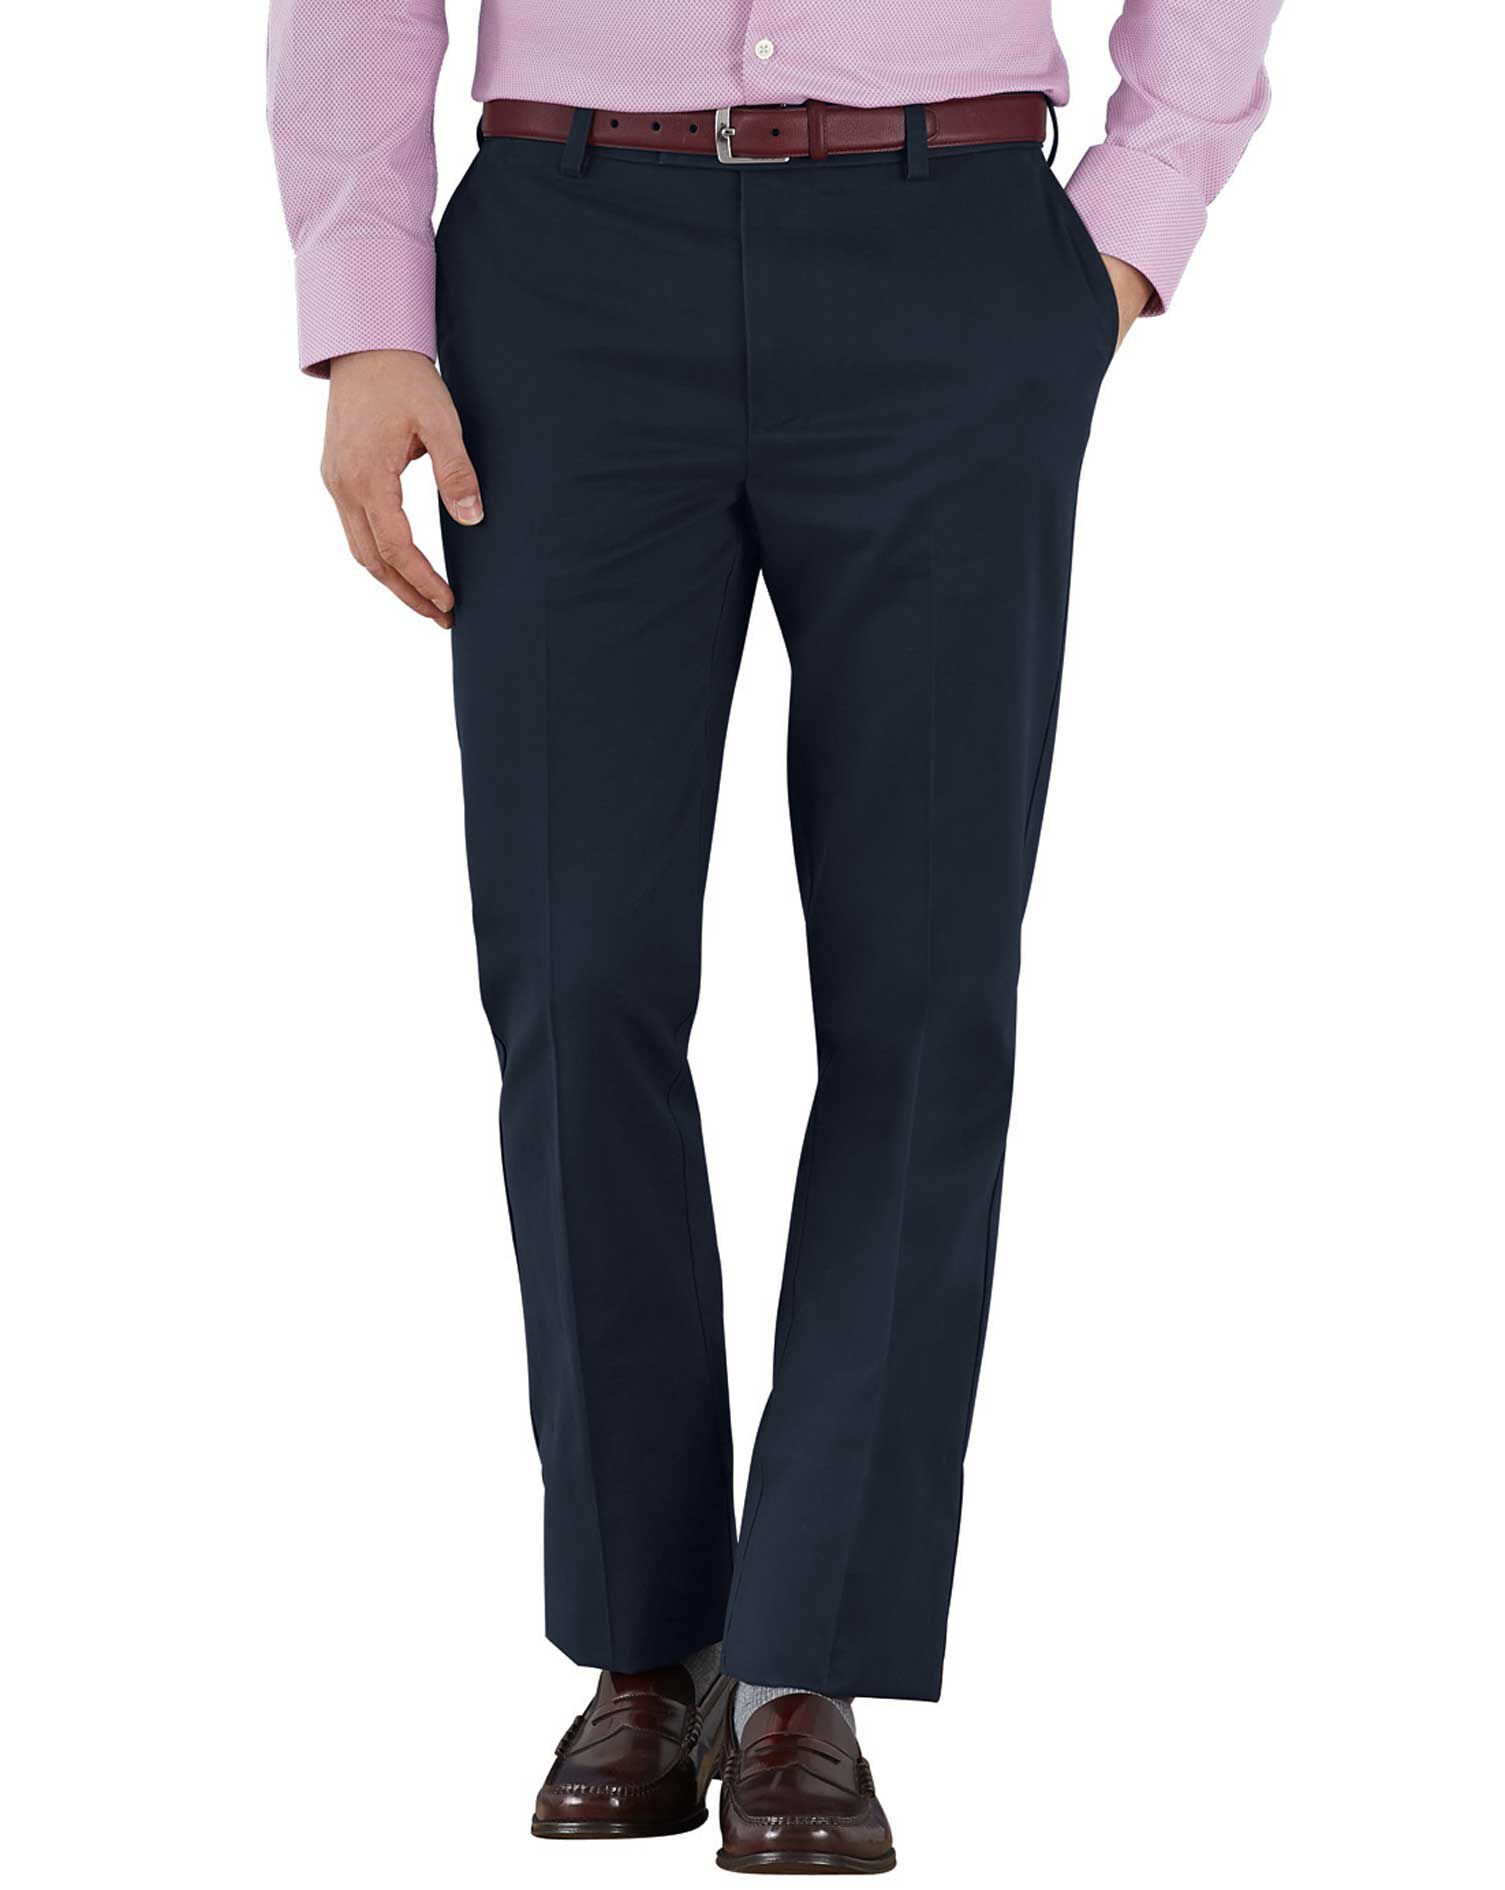 Navy Slim Fit Flat Front Non-Iron Cotton Chino Trousers Size W34 L30 by Charles Tyrwhitt